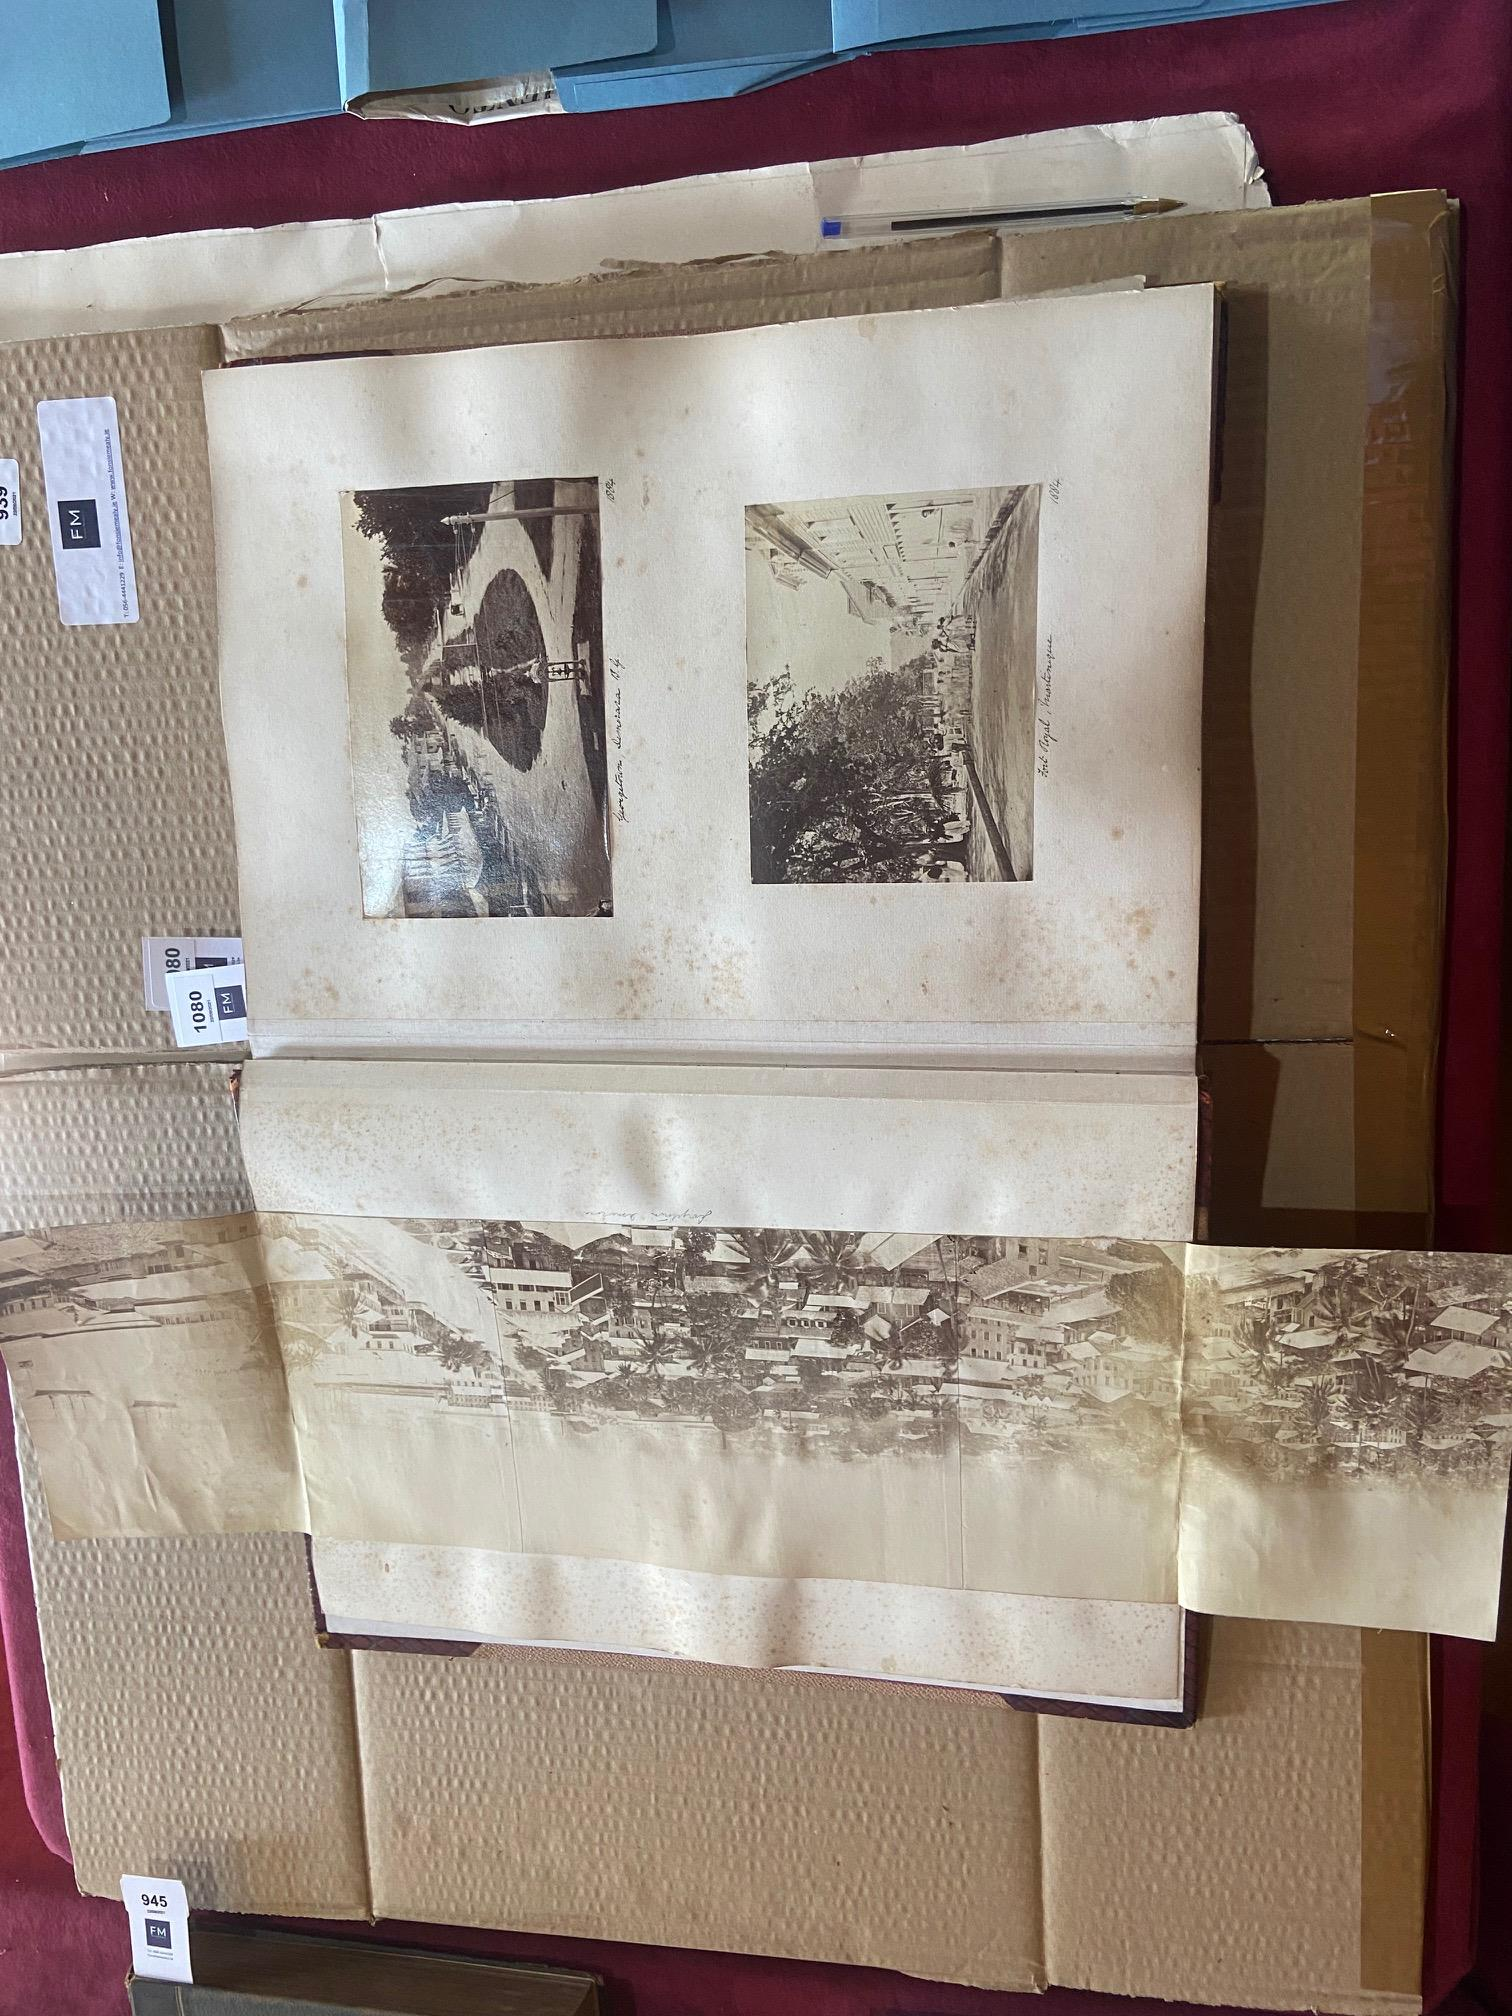 Photographs: Two large folio Albums of Photographs, each c. 1870 - 1890's. One Album contains - Image 26 of 31